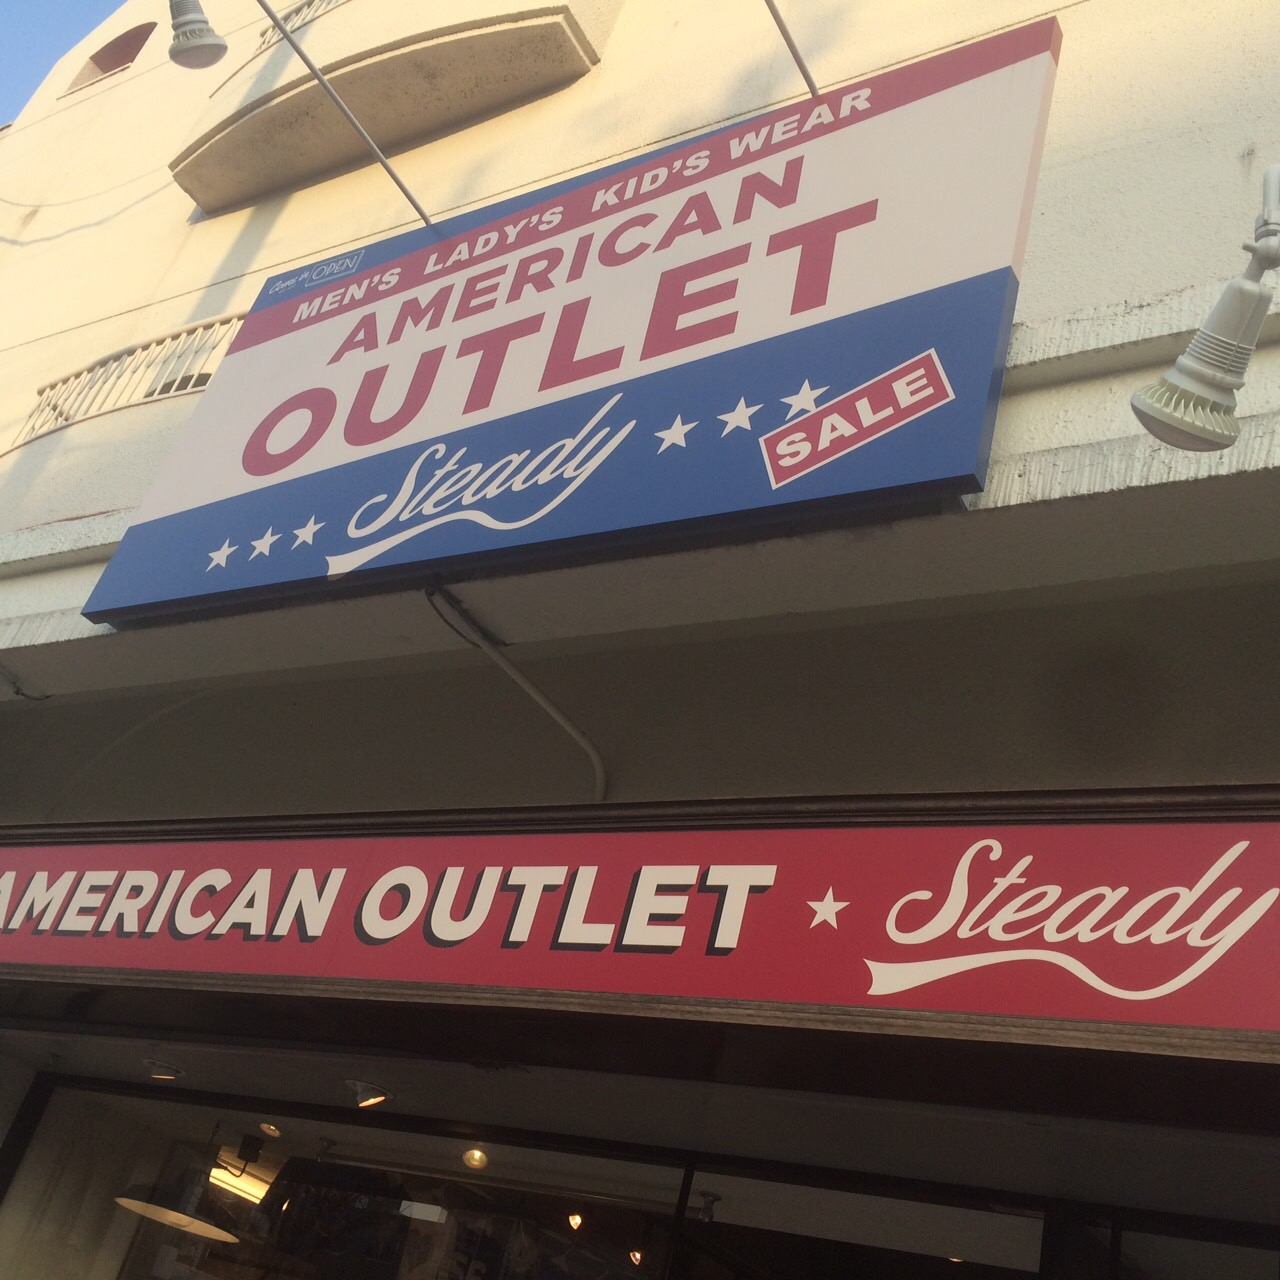 AMERICAN OUTLET Steady1